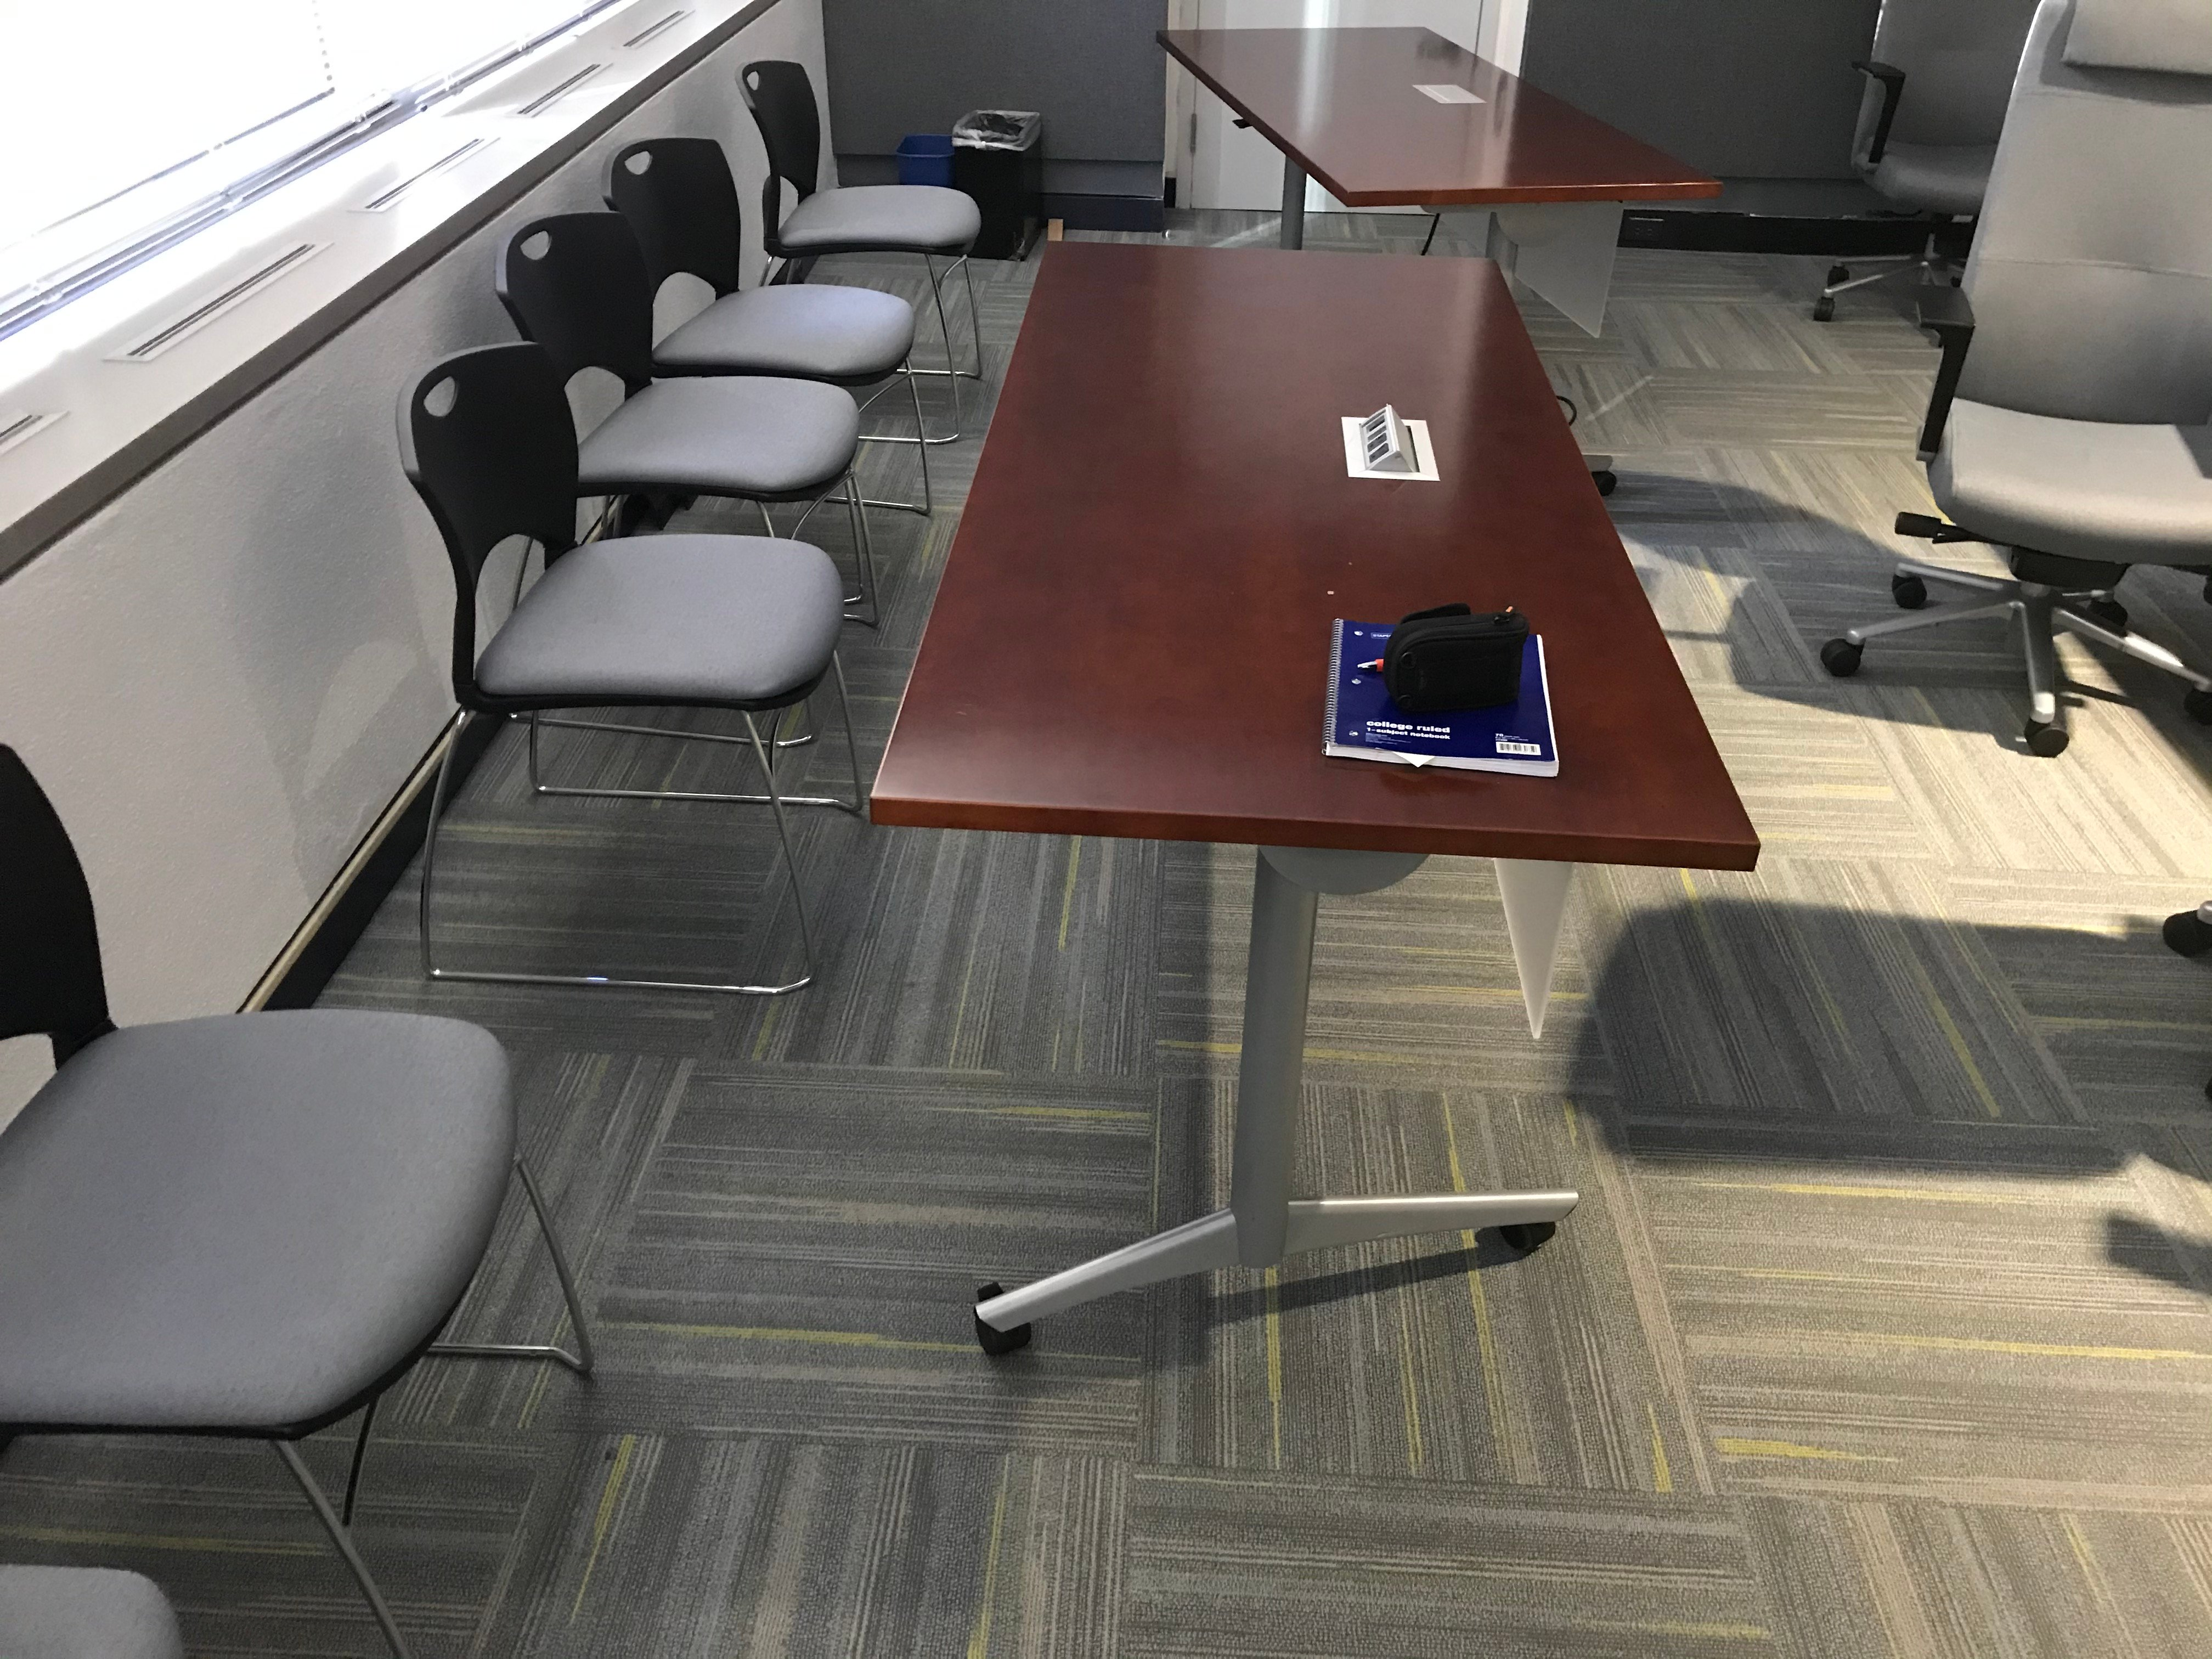 Moveable Conference Table with Outlet Plugs